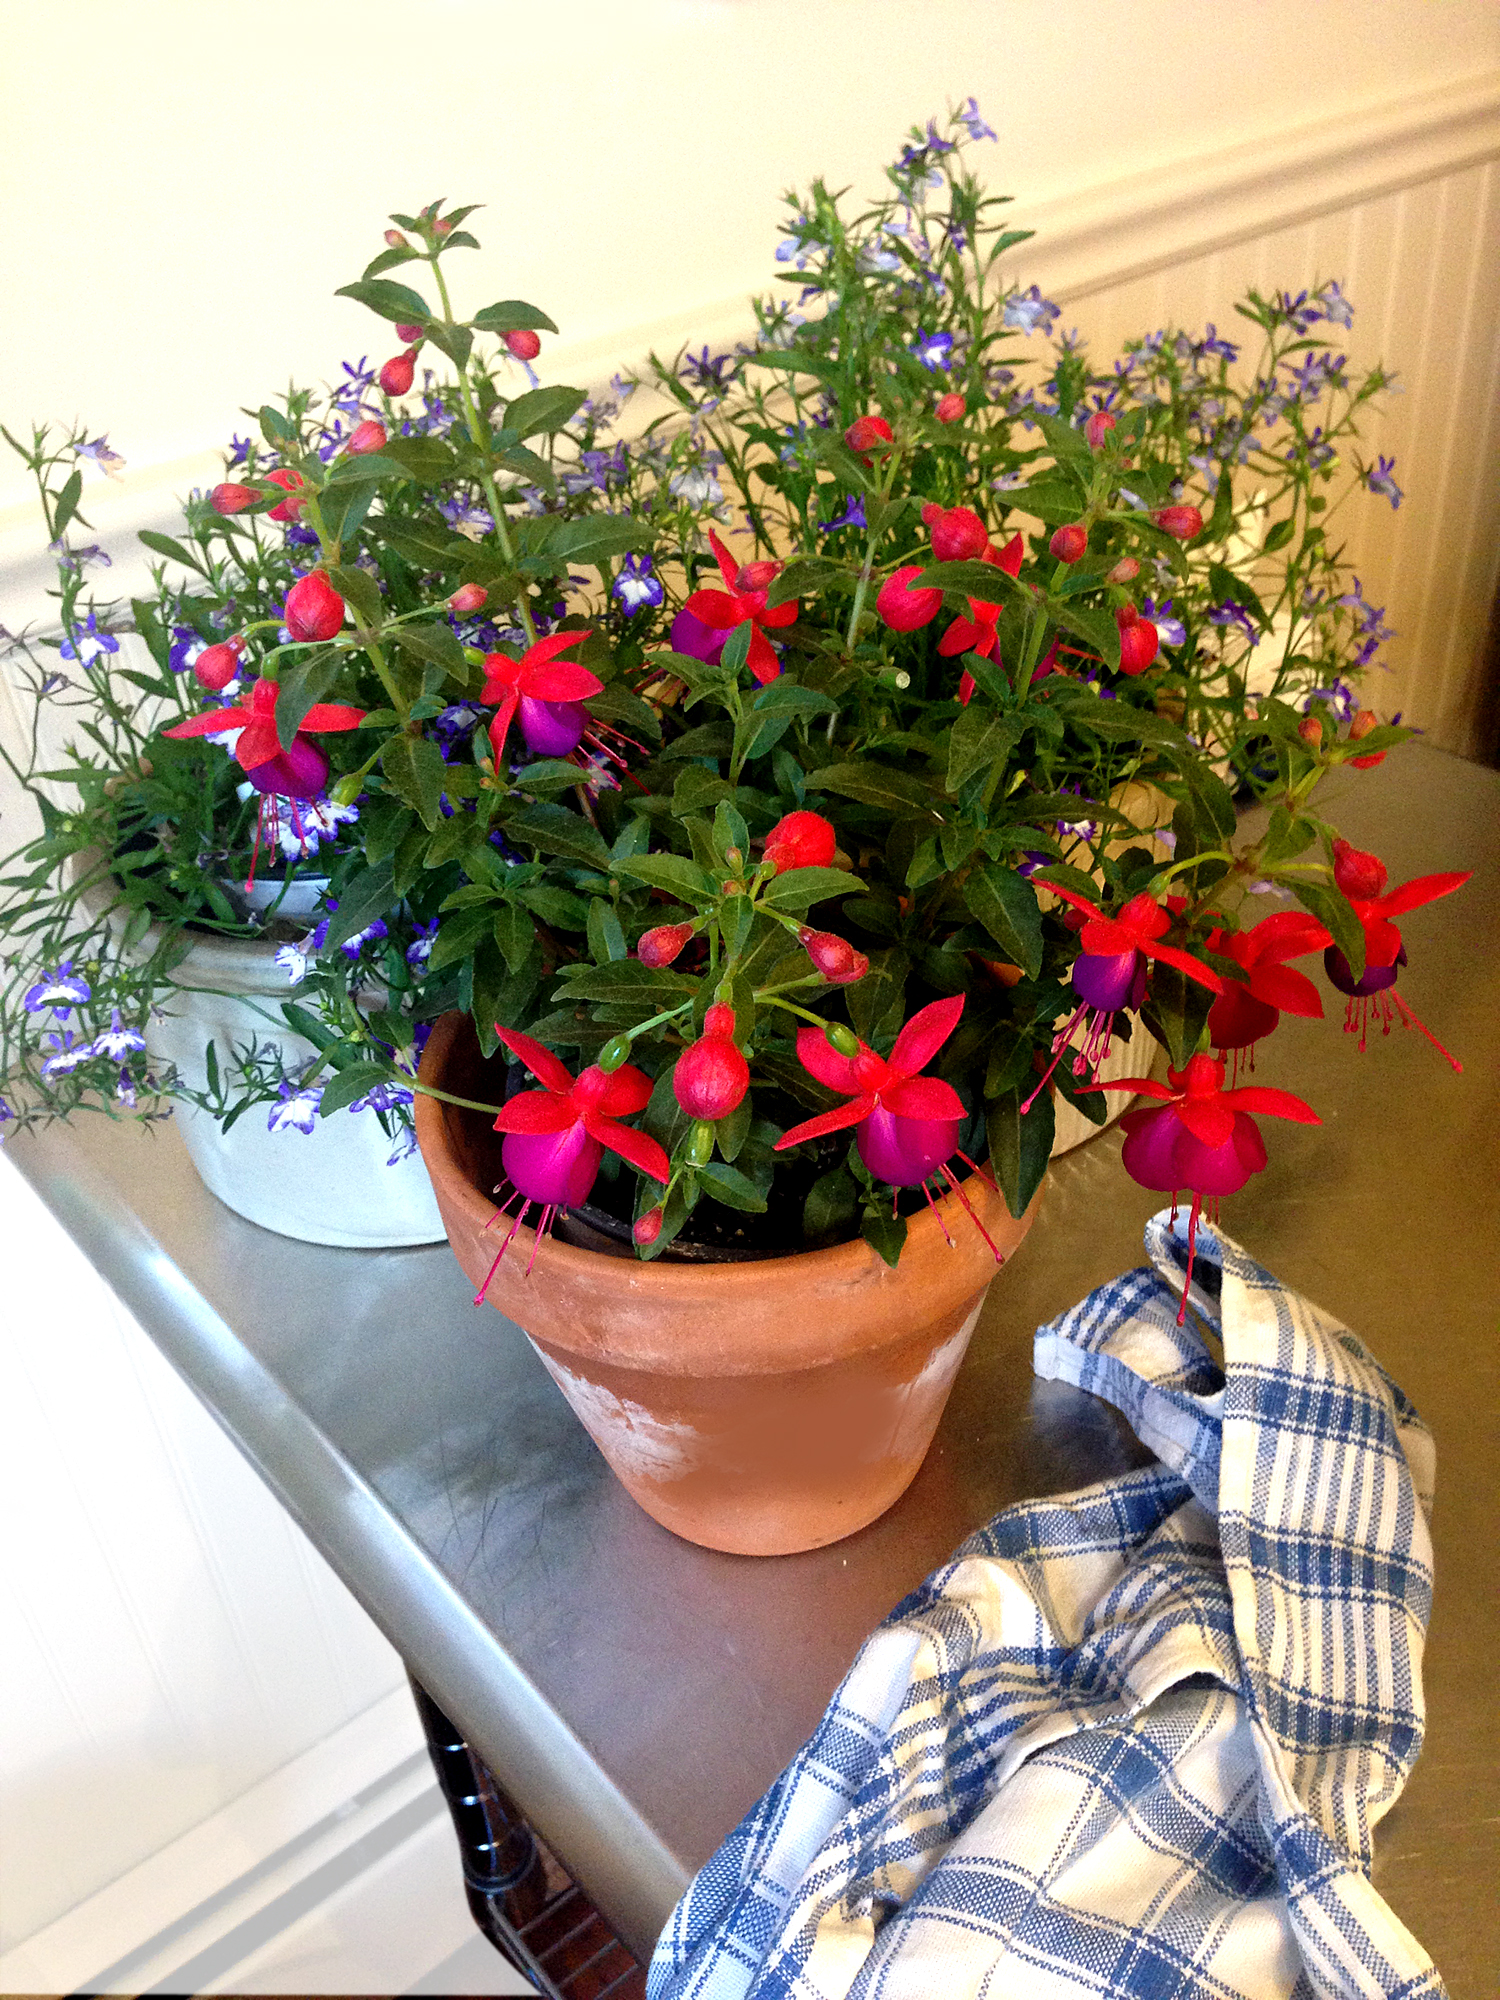 Pots of Fuchsia and Lobelia